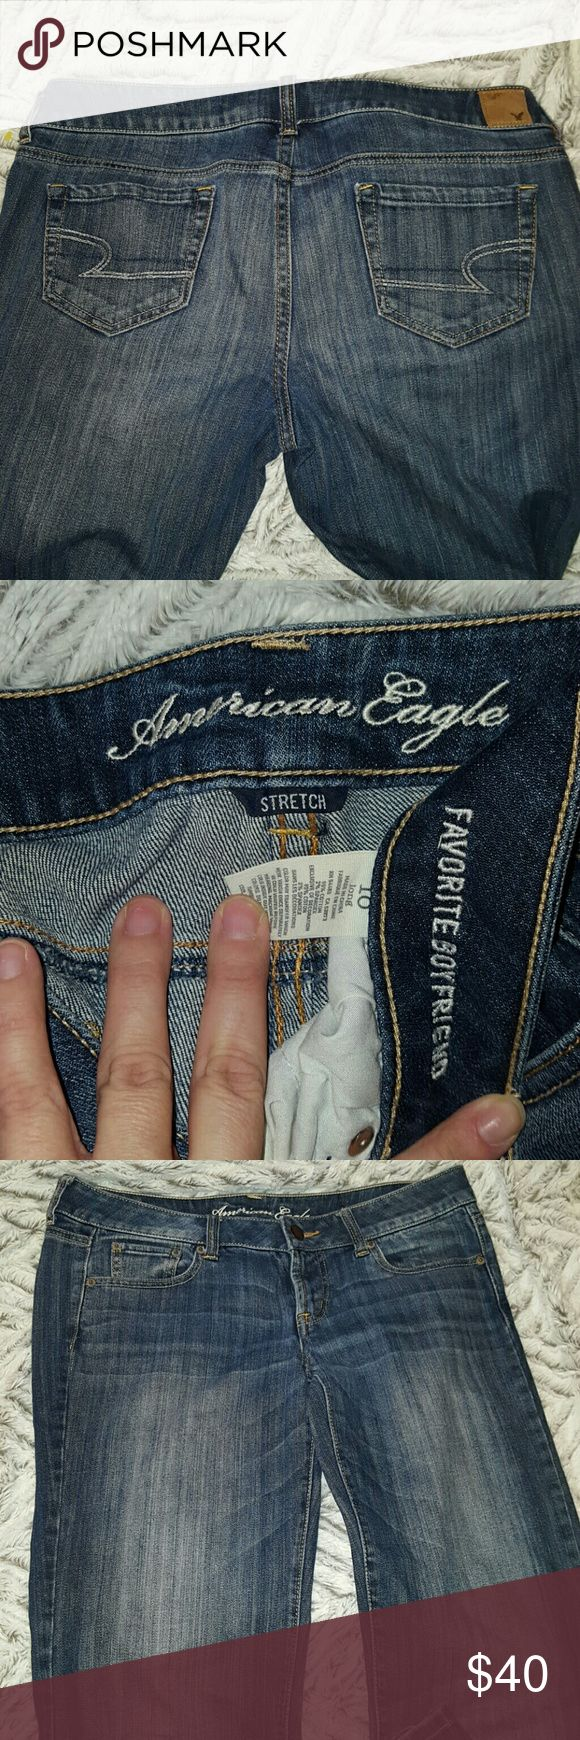 FAVORITE BOYFRIEND STRETCH Jeans American Eagle 10 long length ~  98% cotton 2% spandex ~ these were only wore for about 2 hours in a fashion show. They are in like new condition and very comfortable. Lighter wash down legs and light wash in back herl area as purchased from American Eagle. A highly favorite sell out style. Grab them quick. I ship daily. American Eagle Outfitters Jeans Boyfriend